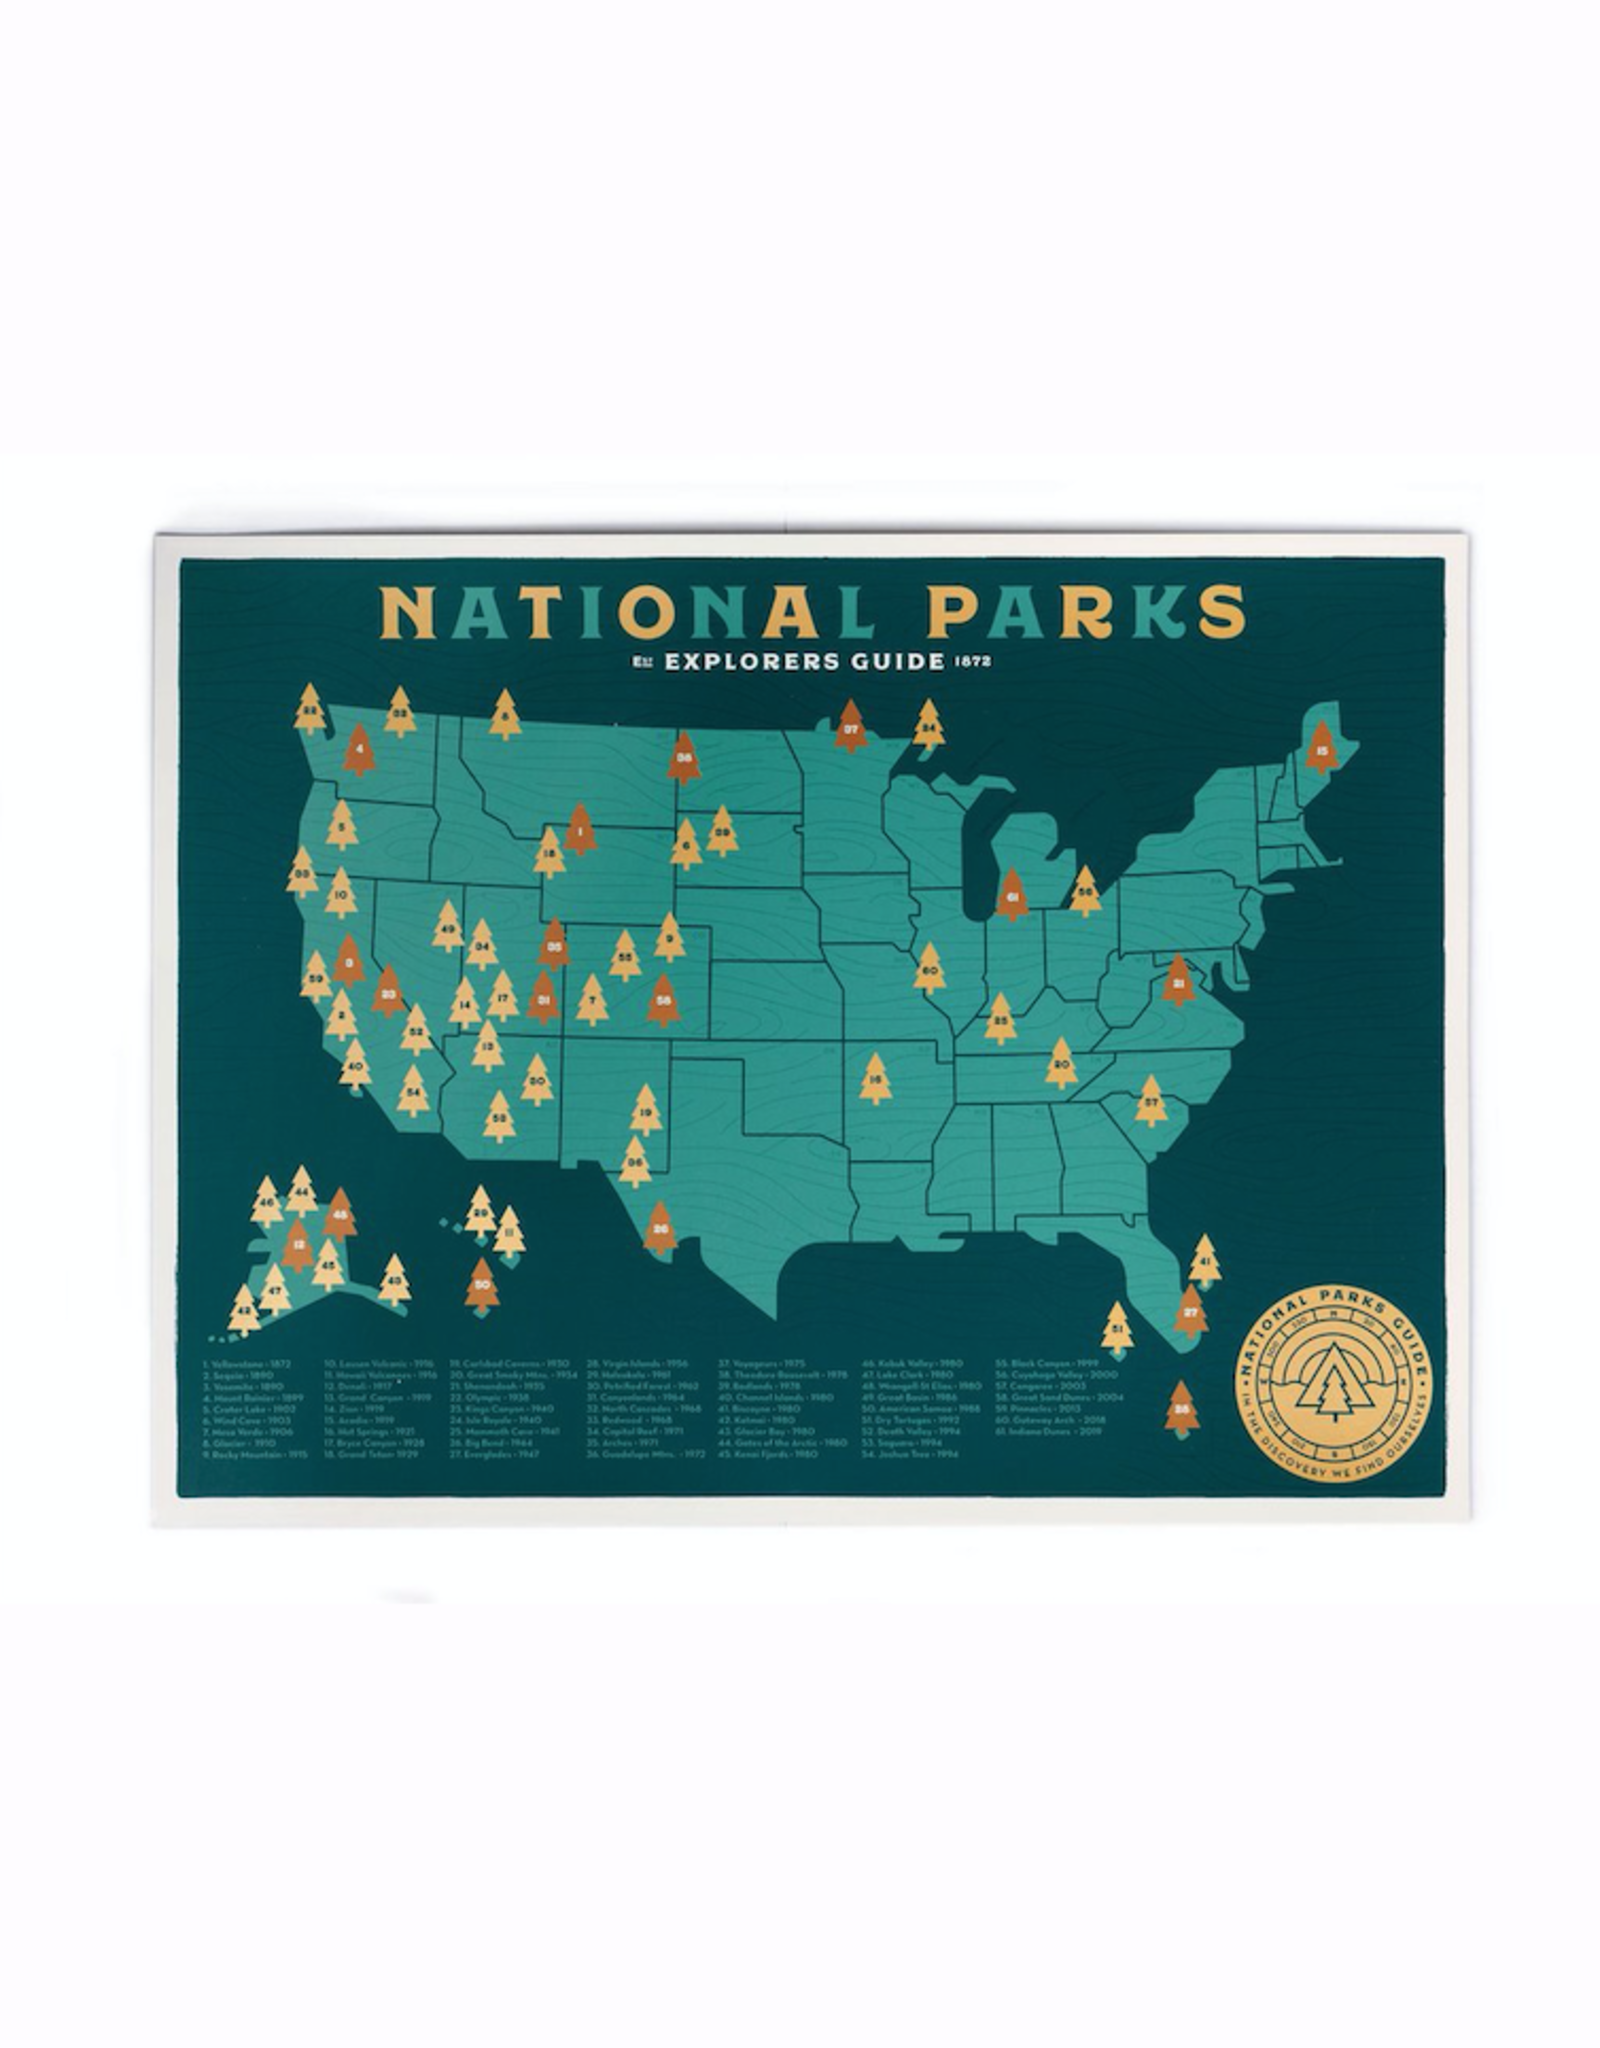 Ello There Print Co. 18x24 Special Edition Green  Screen National Parks Checklists with Gold Stickers